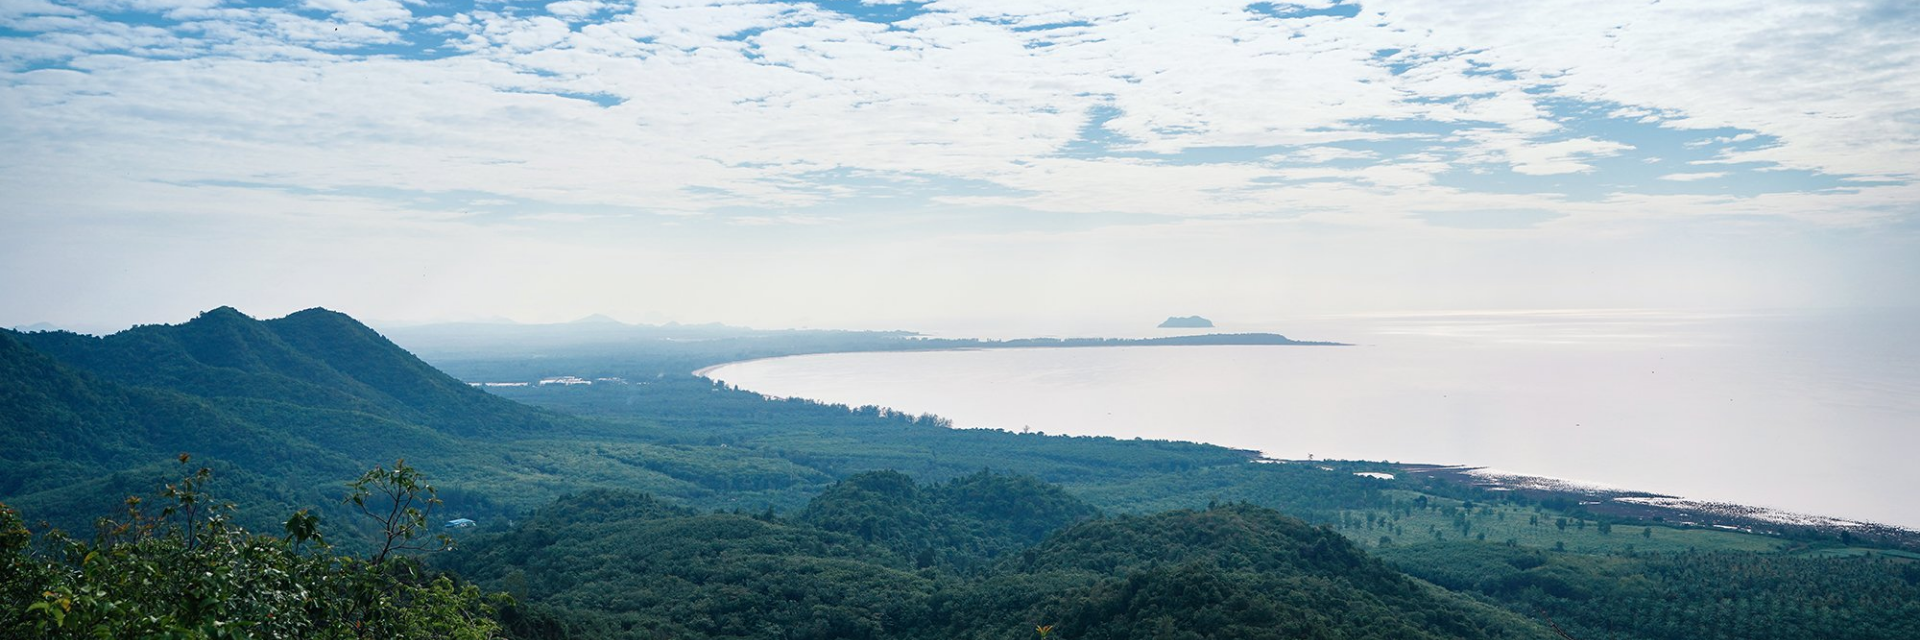 Experience the 4 aspects of Chumphon: View the sea of mist on top of the mountain, pay respect to the province's spiritual anchor and be a part of a local fishing community